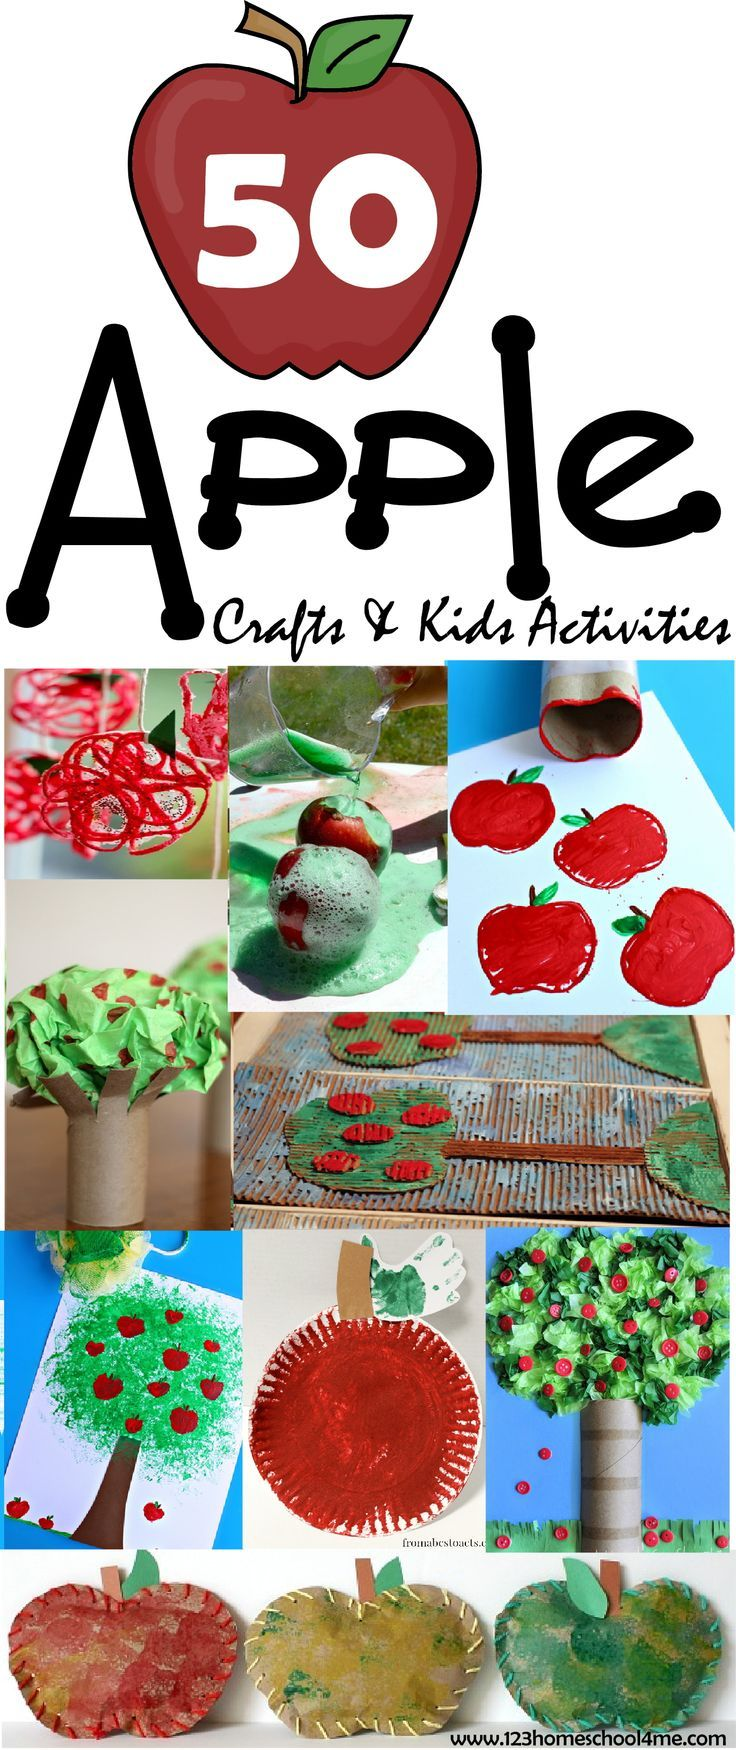 50 FUN Apple Crafts for Kids & Kids Activities - wow there are so many  really